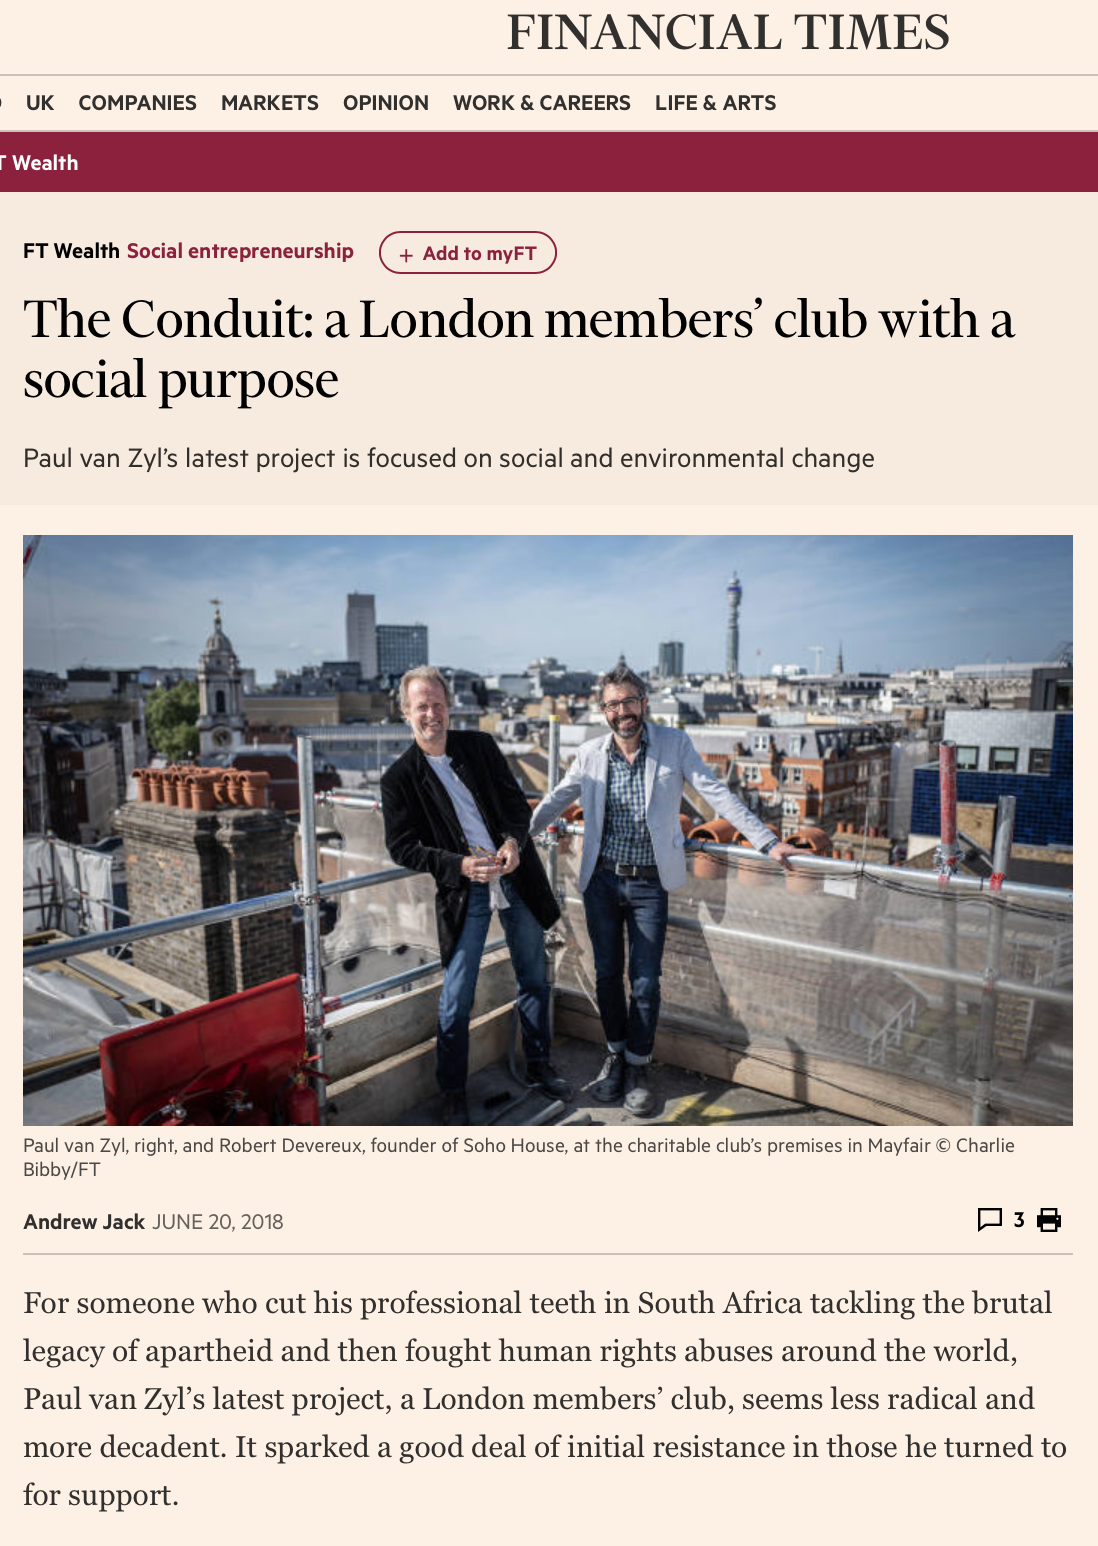 The Conduit in the FT